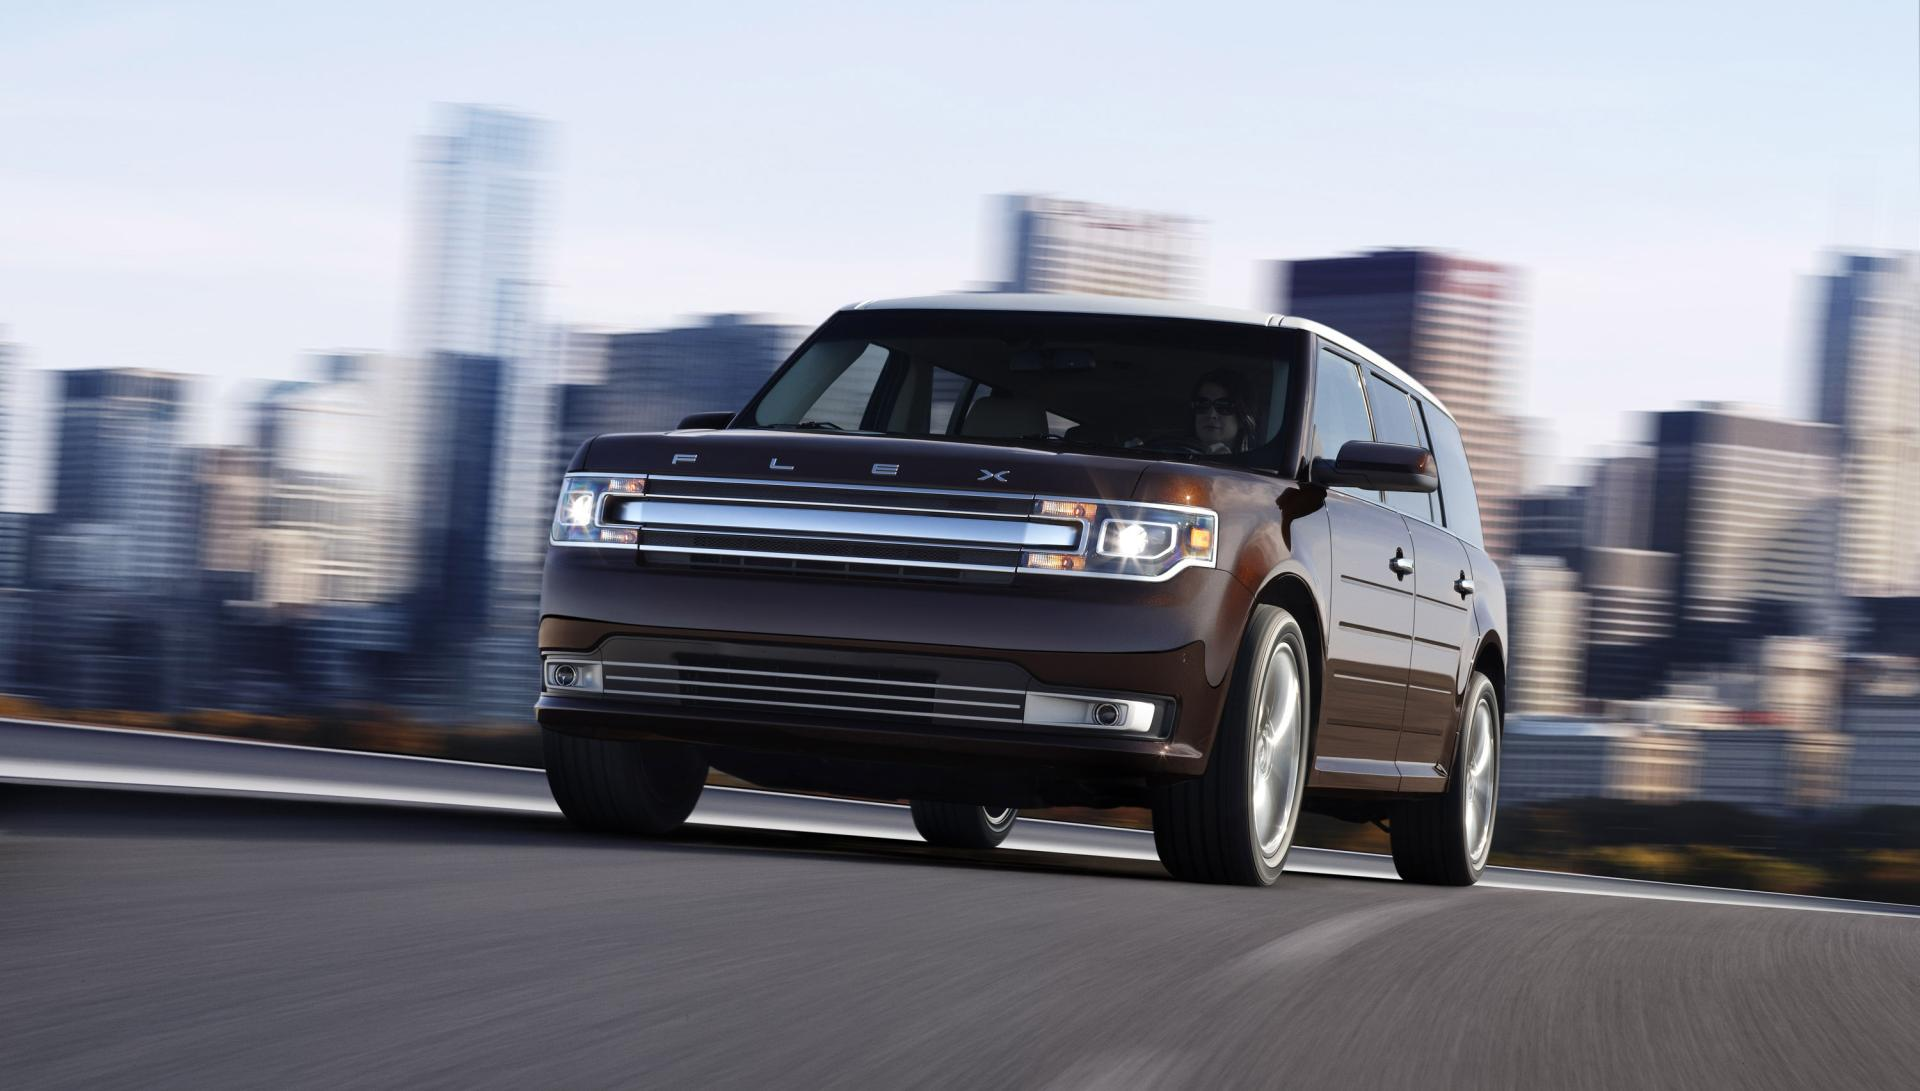 2013 ford flex technical specifications and data engine dimensions and mechanical details. Black Bedroom Furniture Sets. Home Design Ideas